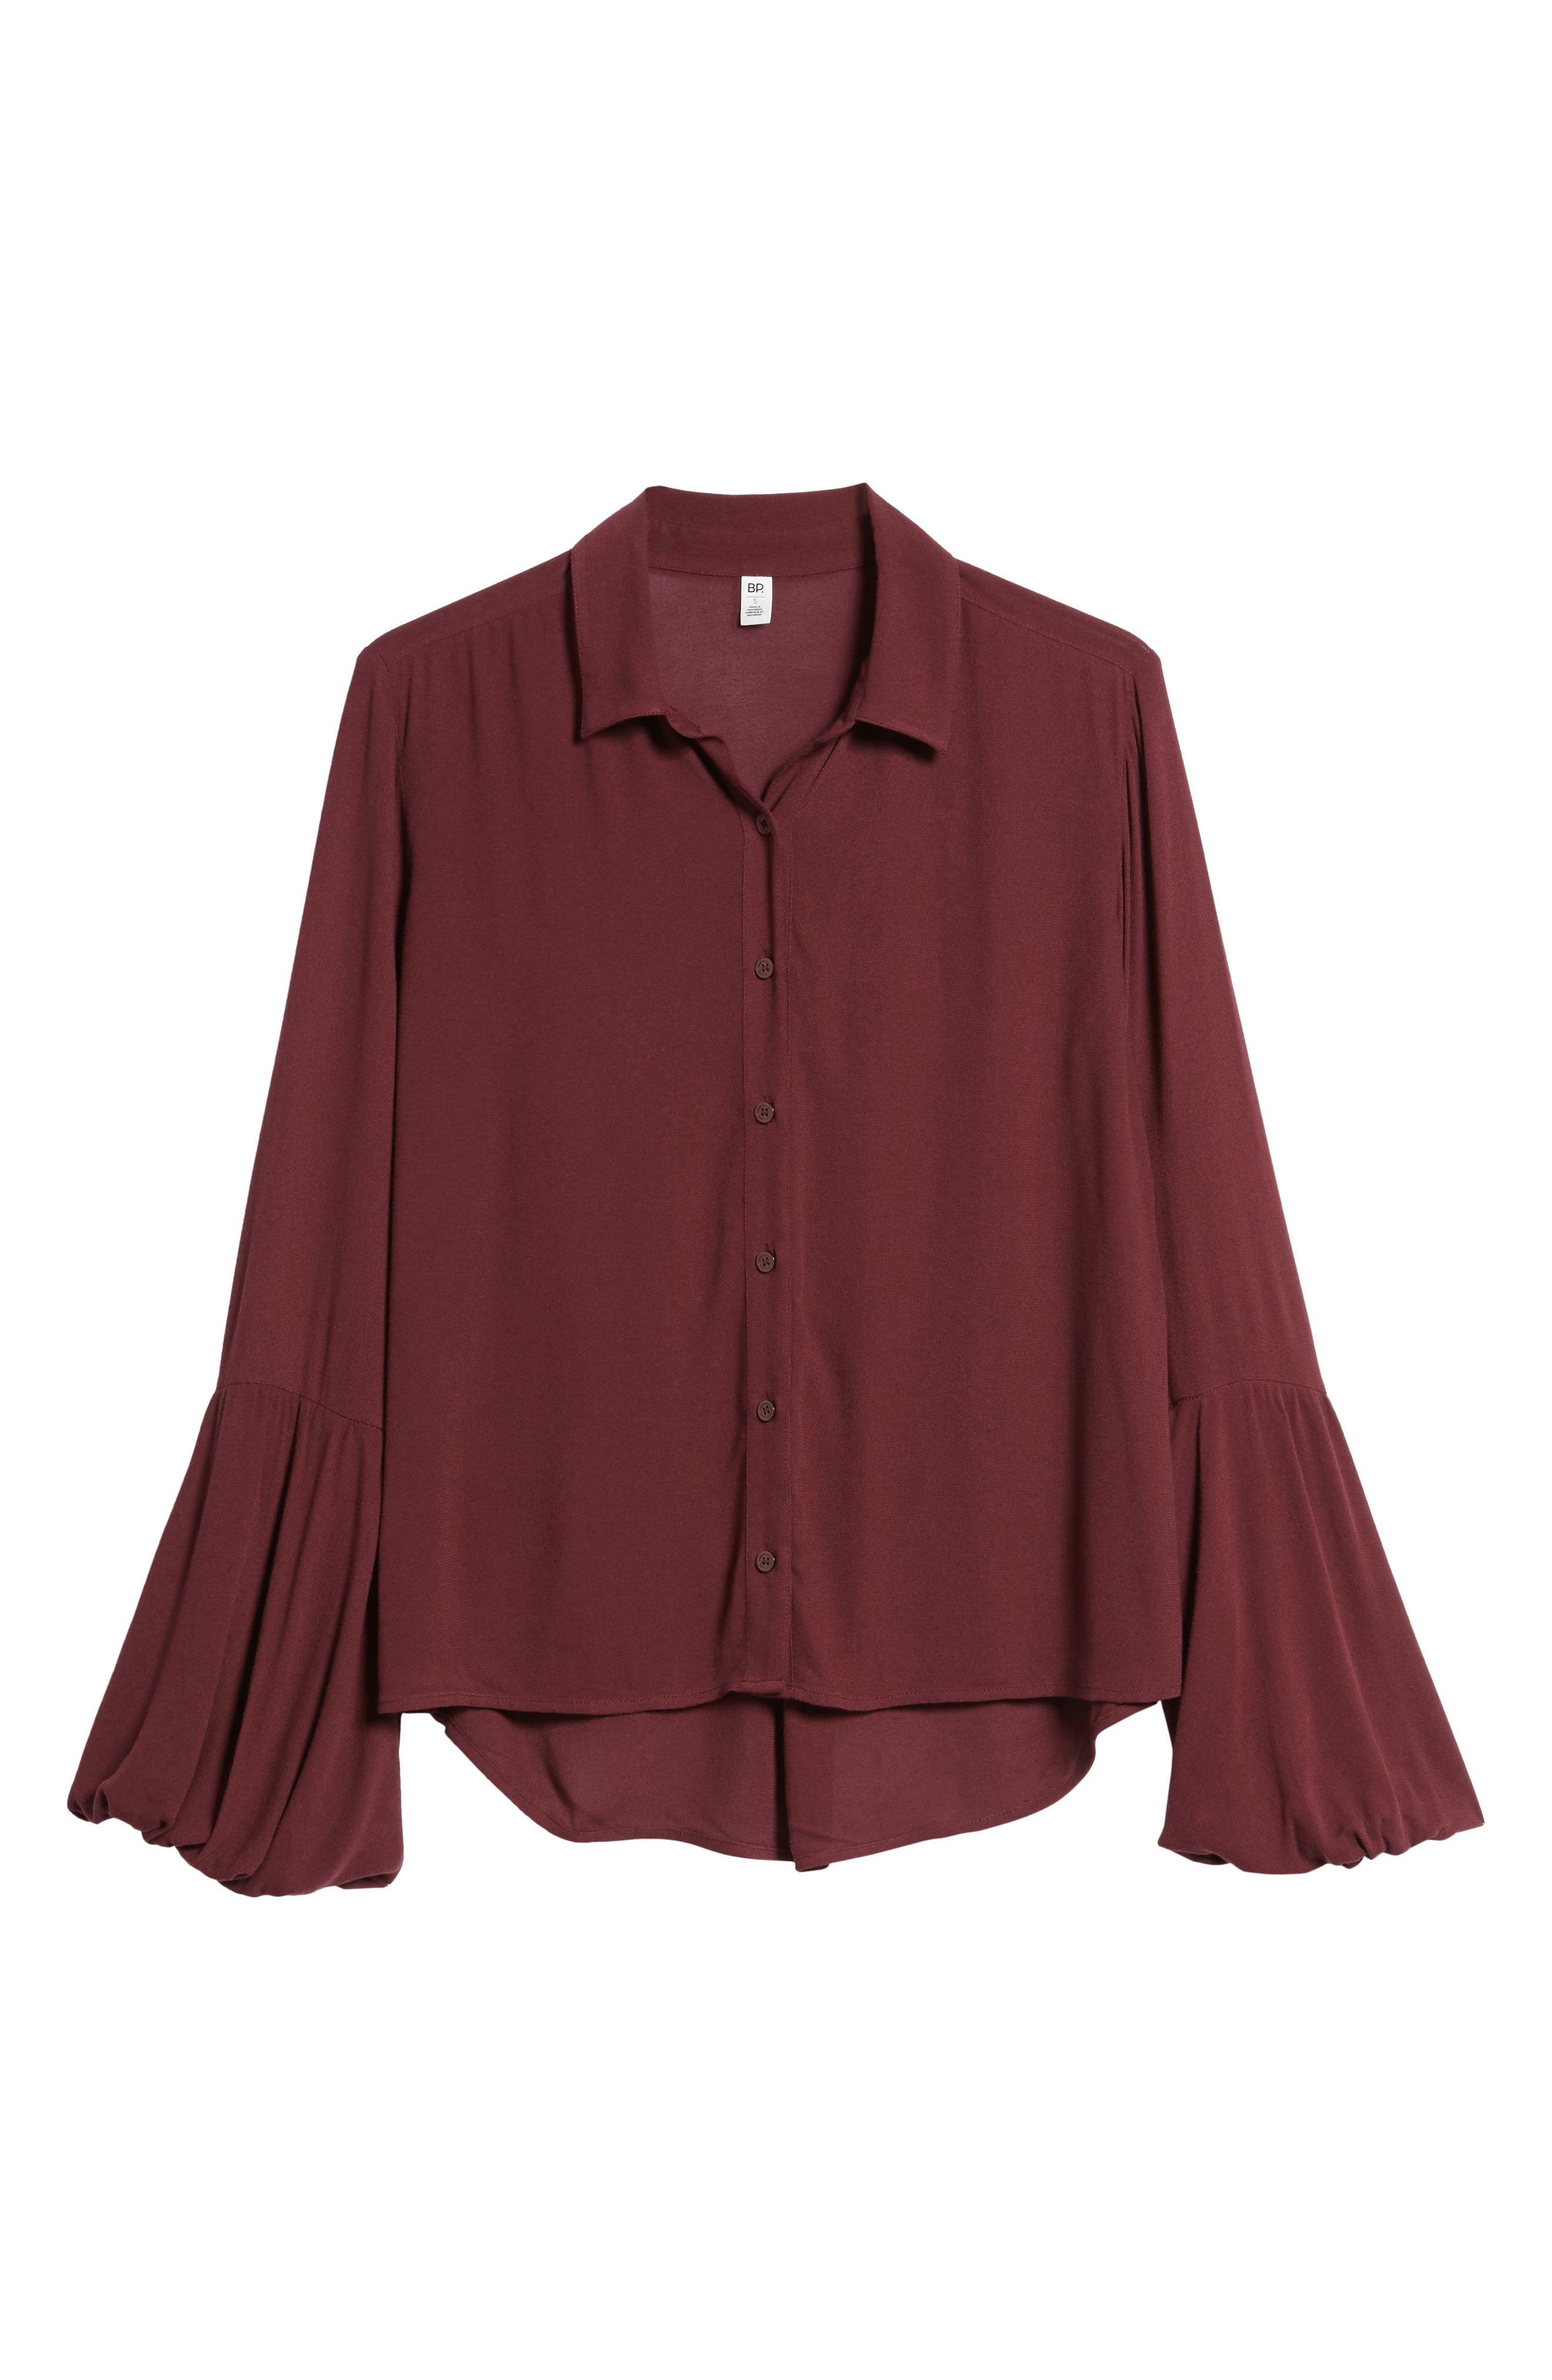 Balloon Sleeve Top,                             Alternate thumbnail 6, color,                             Burgundy Royale